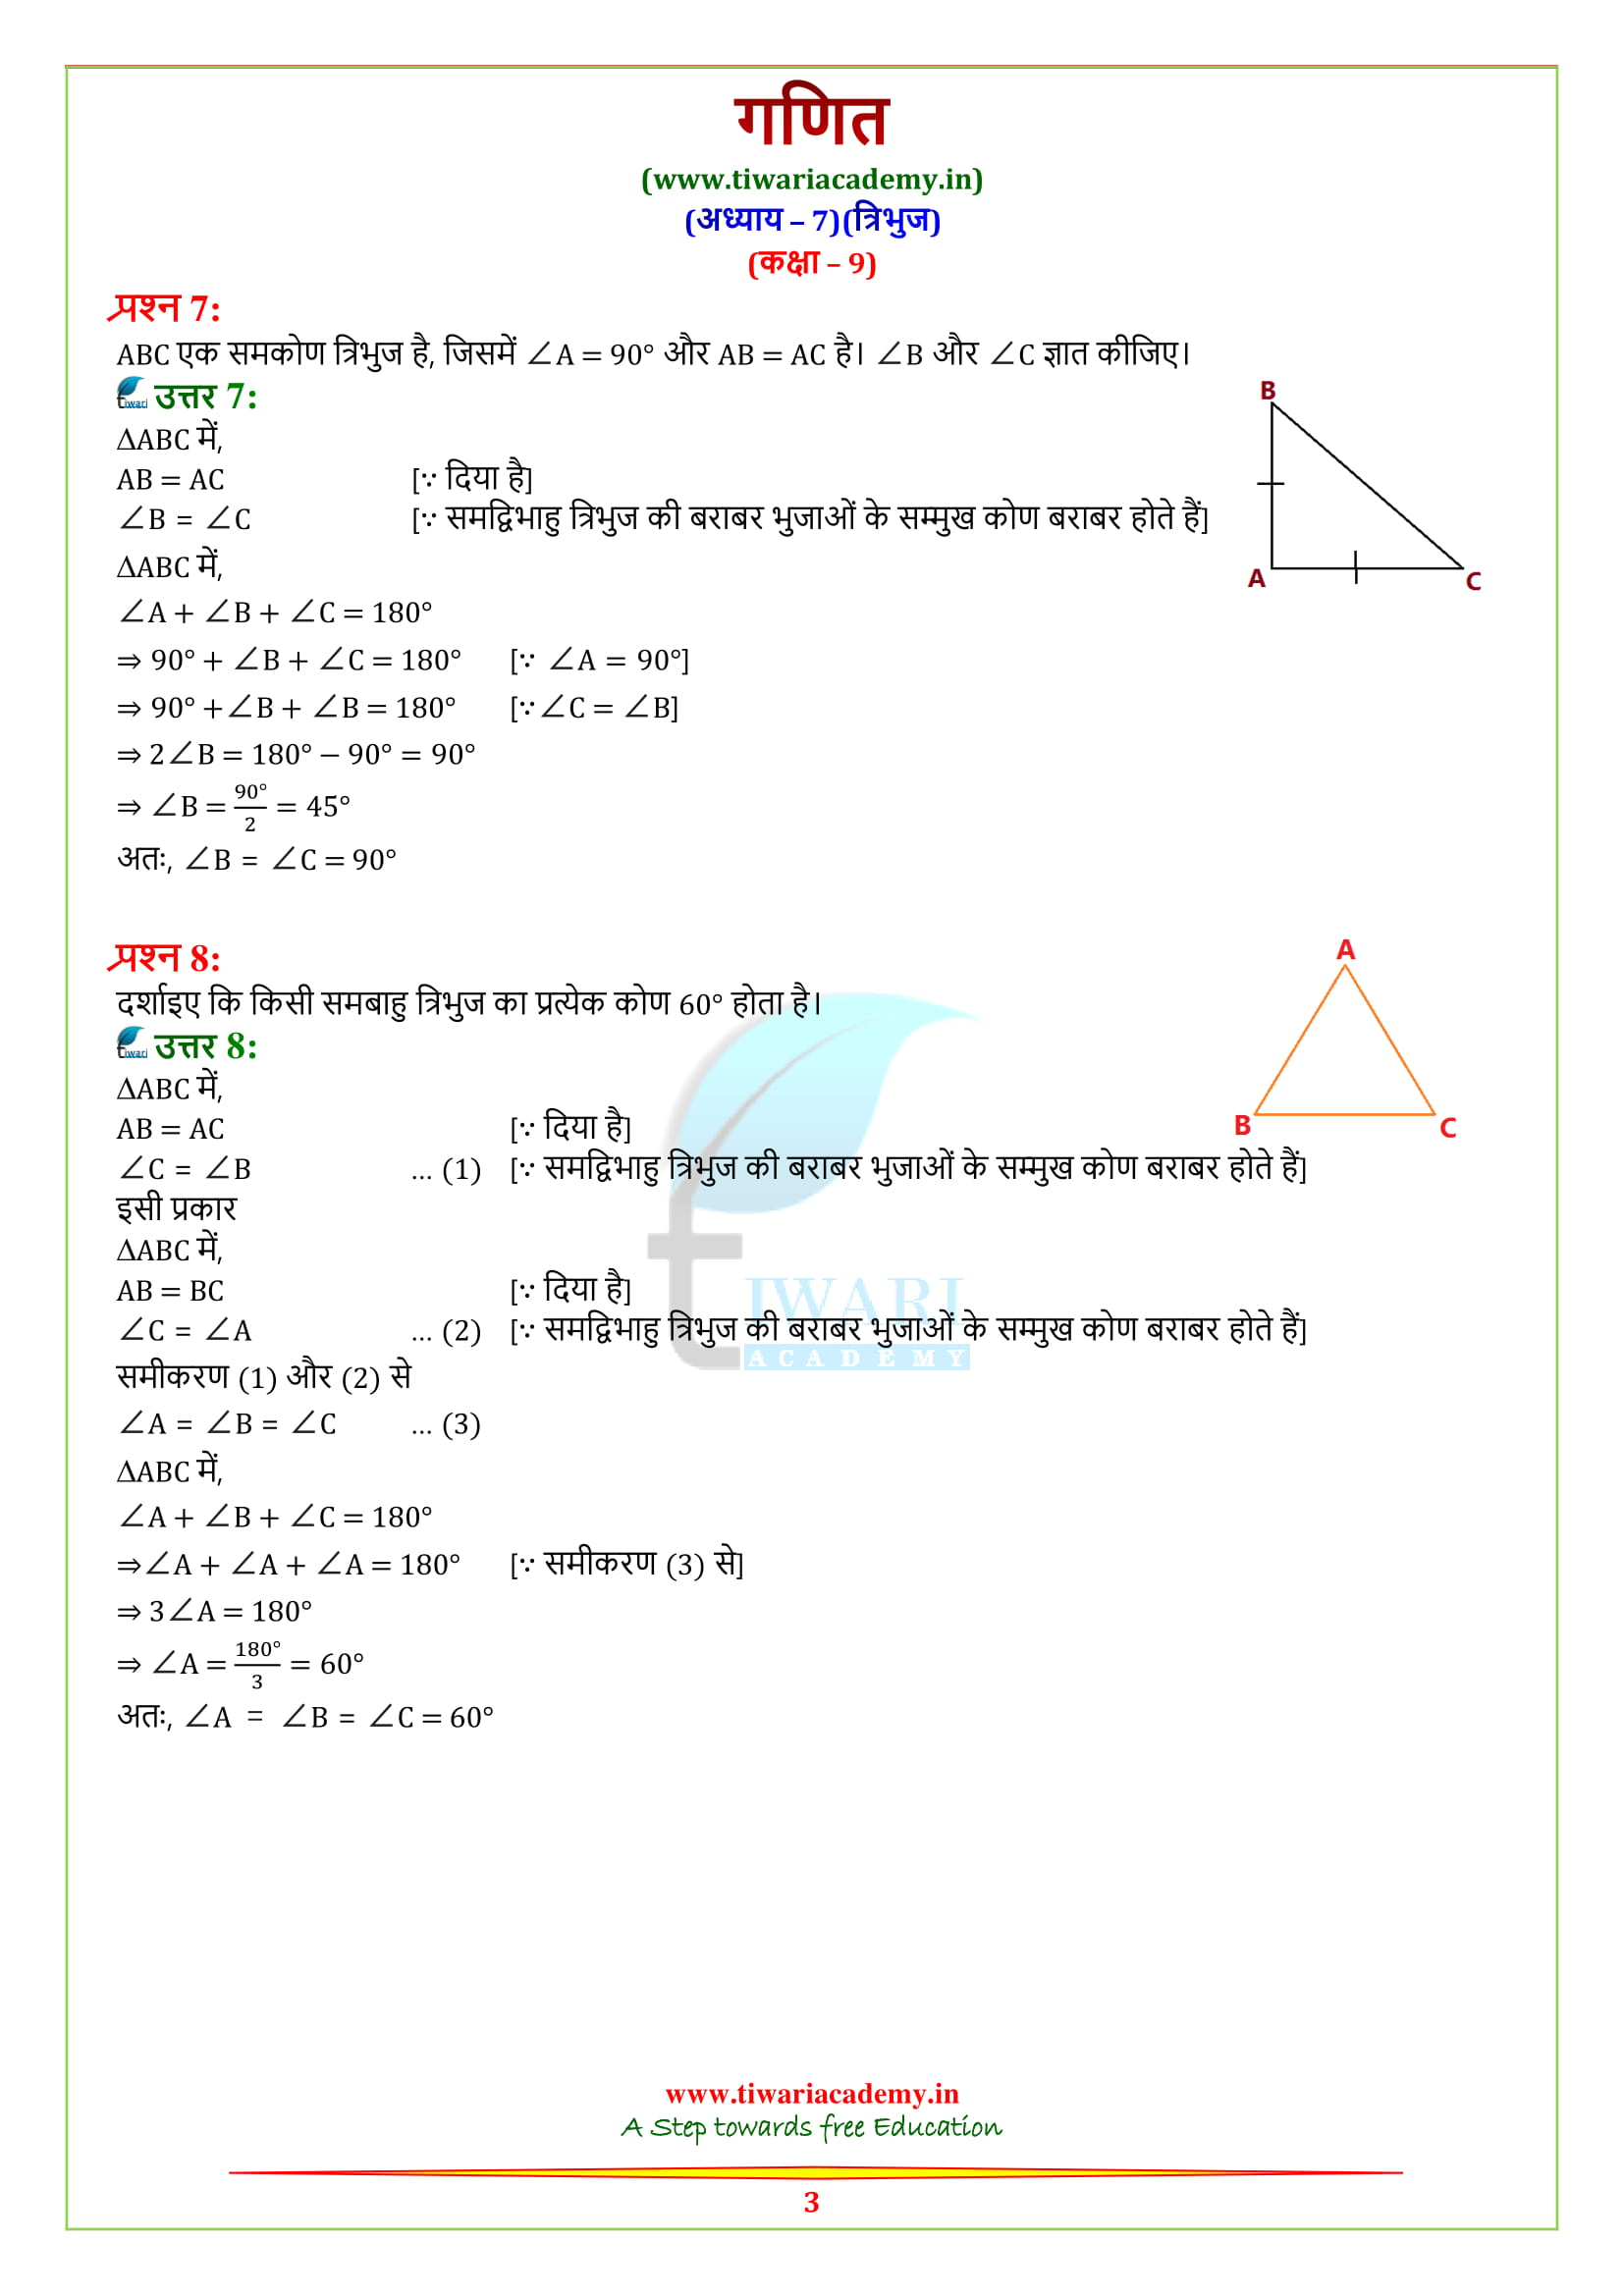 9 Maths Exercise 7.2 solutions free to download